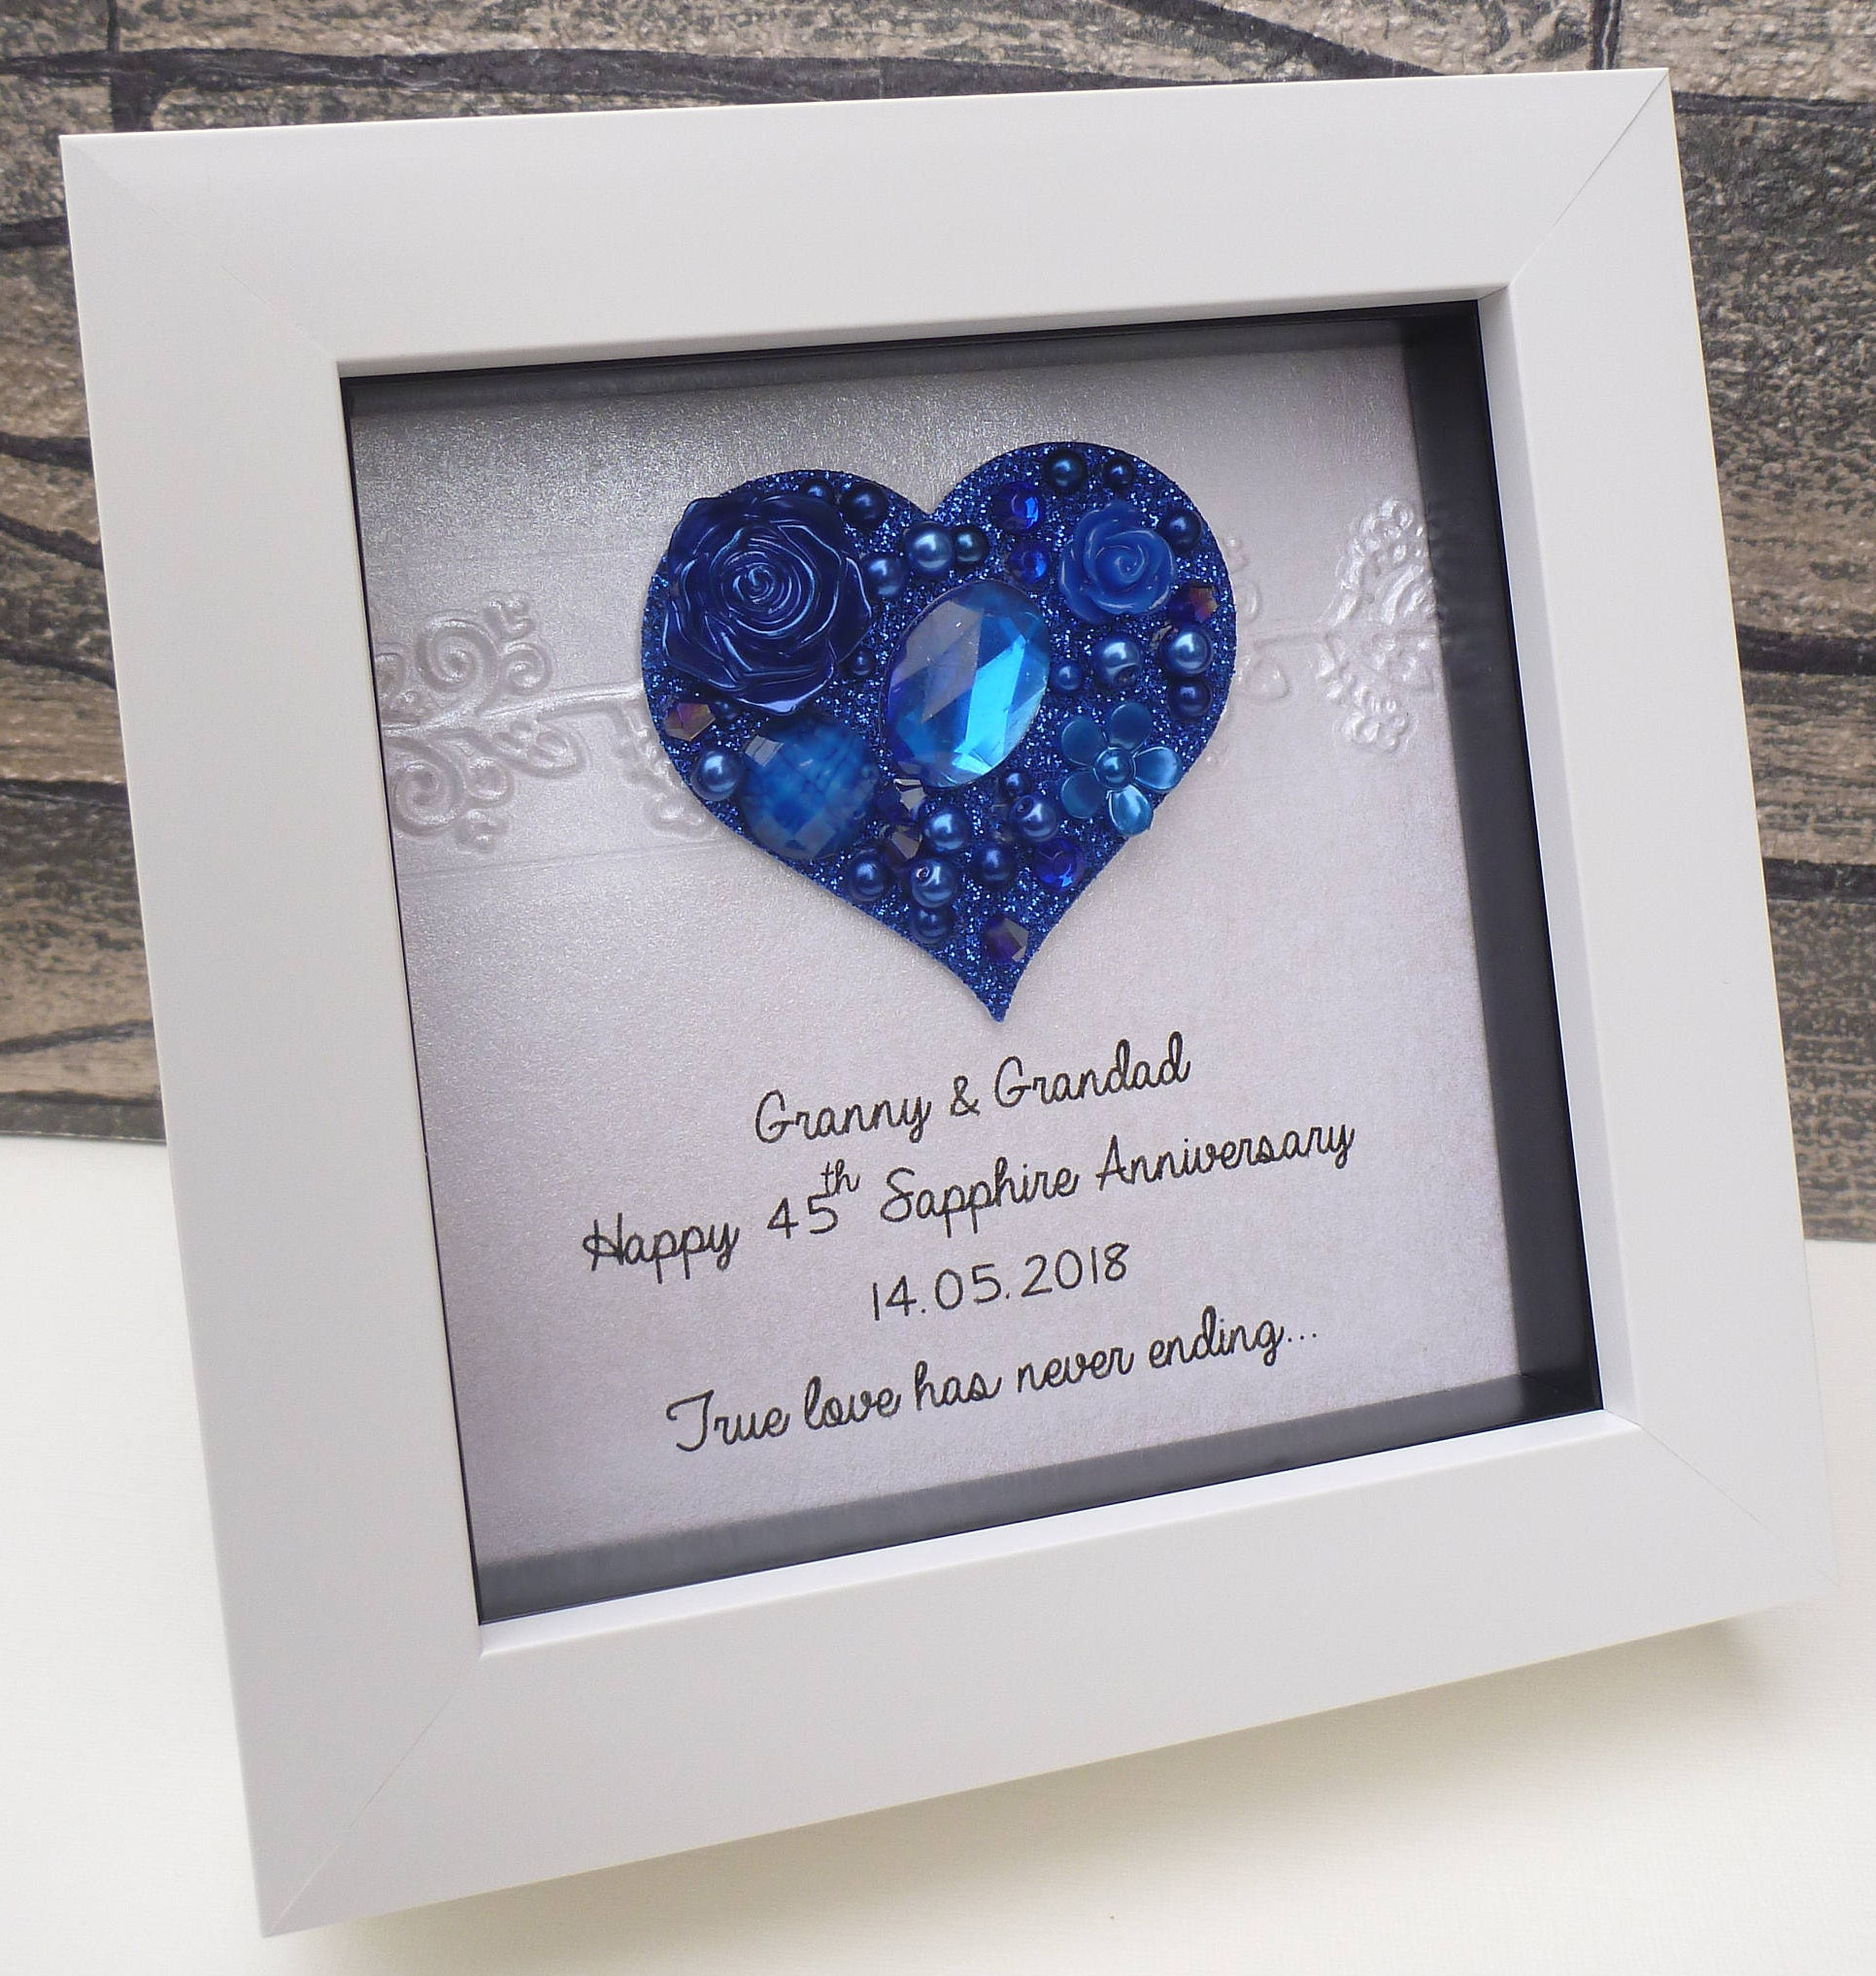 Australian Wedding Anniversary Gifts By Year: 45th Wedding Anniversary Gift 45th Anniversary Gift Sapphire